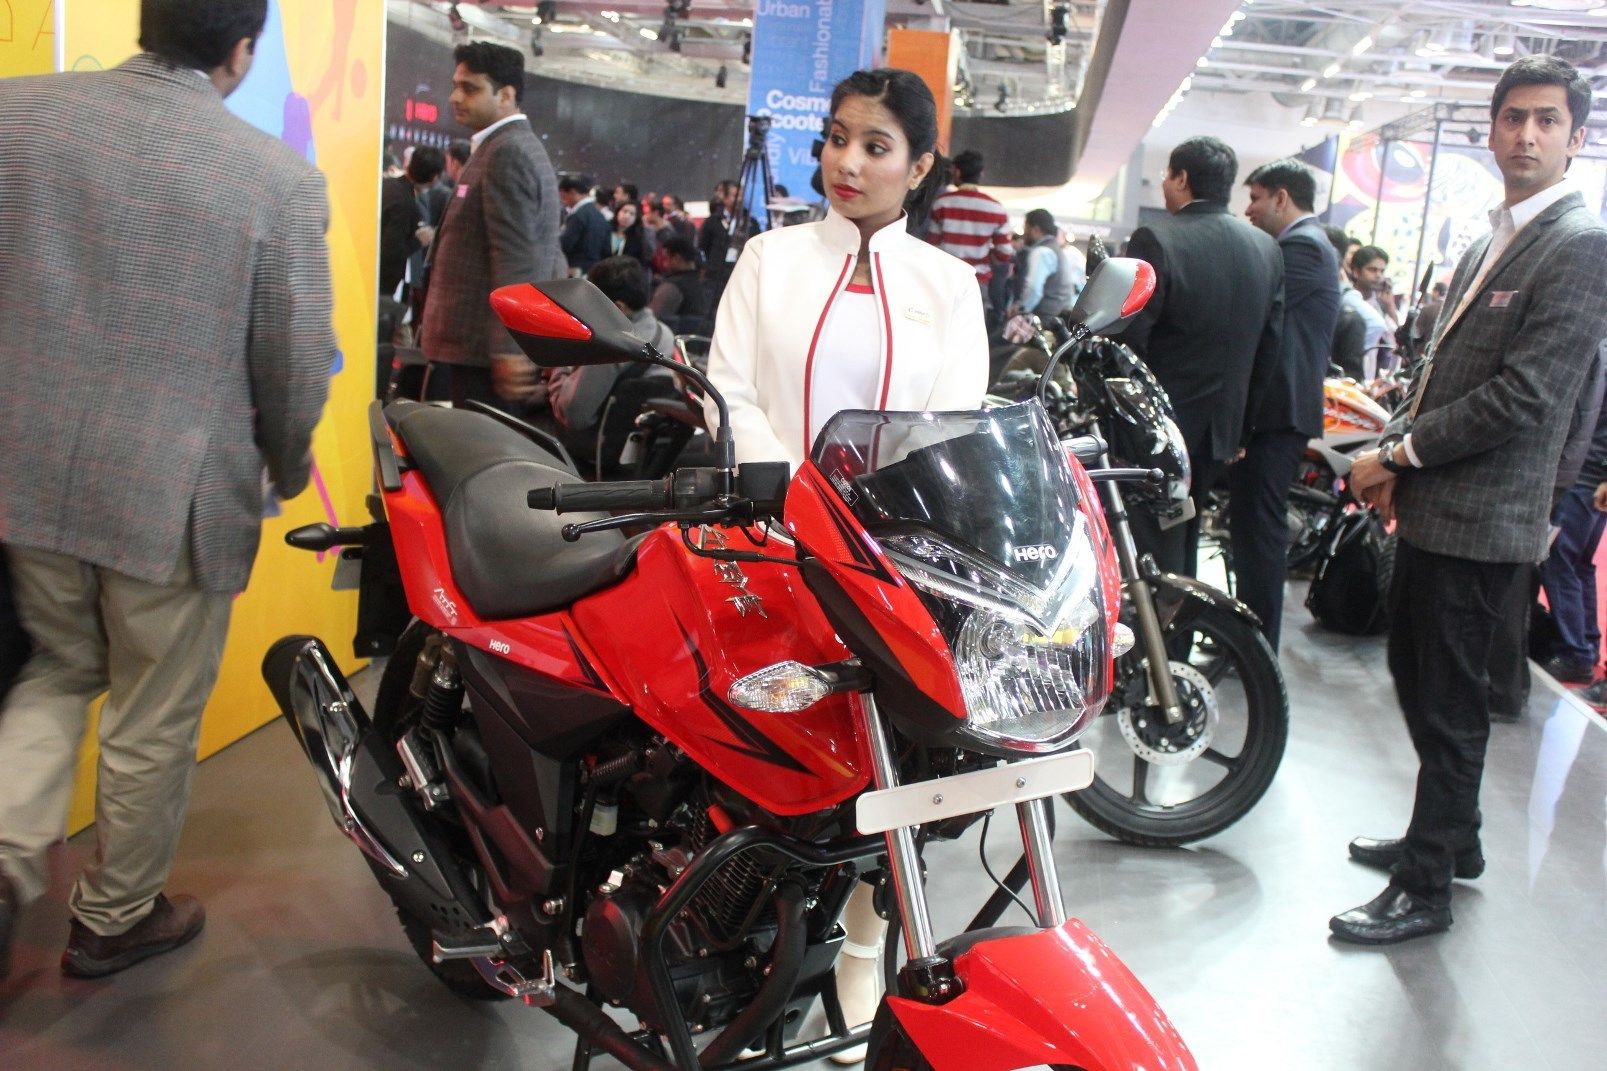 Auhorized Contact List Hero MotoCorp Showrooms in Gurgaon